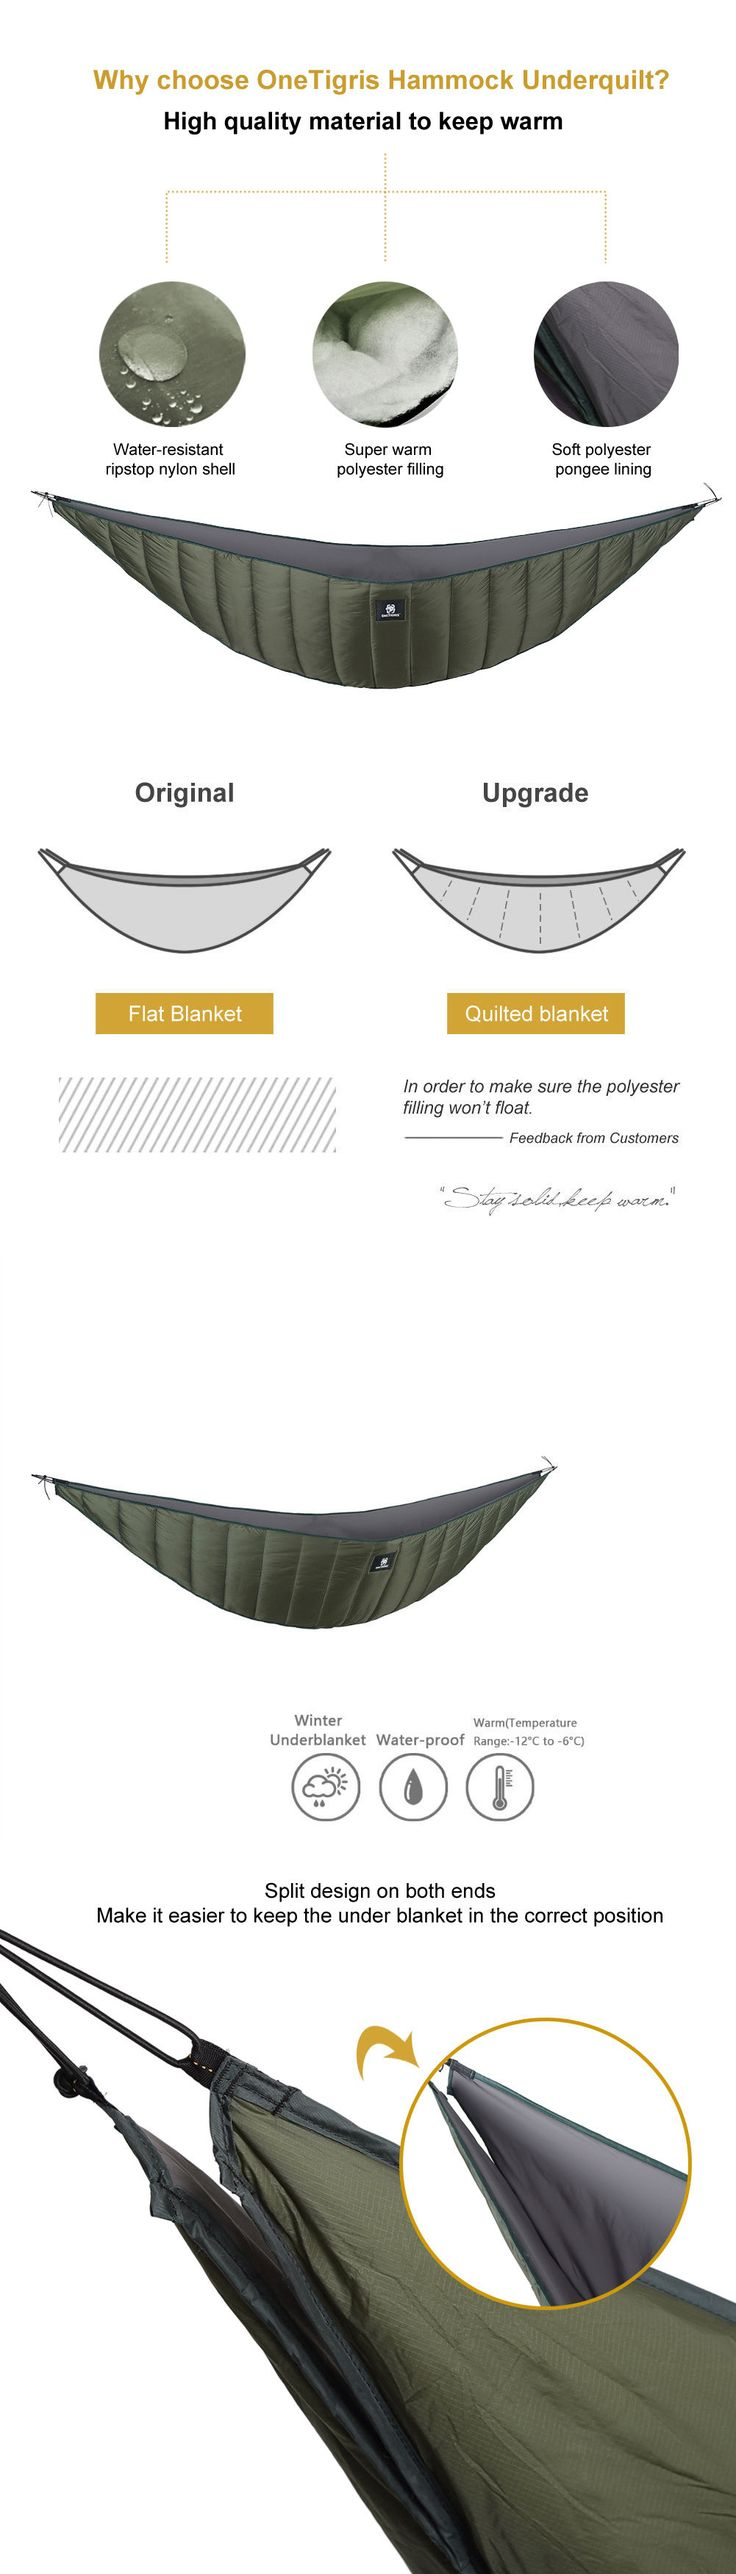 Hammocks 159030: Onetigris Hammock Underquilt Lightweight Packable Full Length Under Blanket -> BUY IT NOW ONLY: $65.5 on eBay!